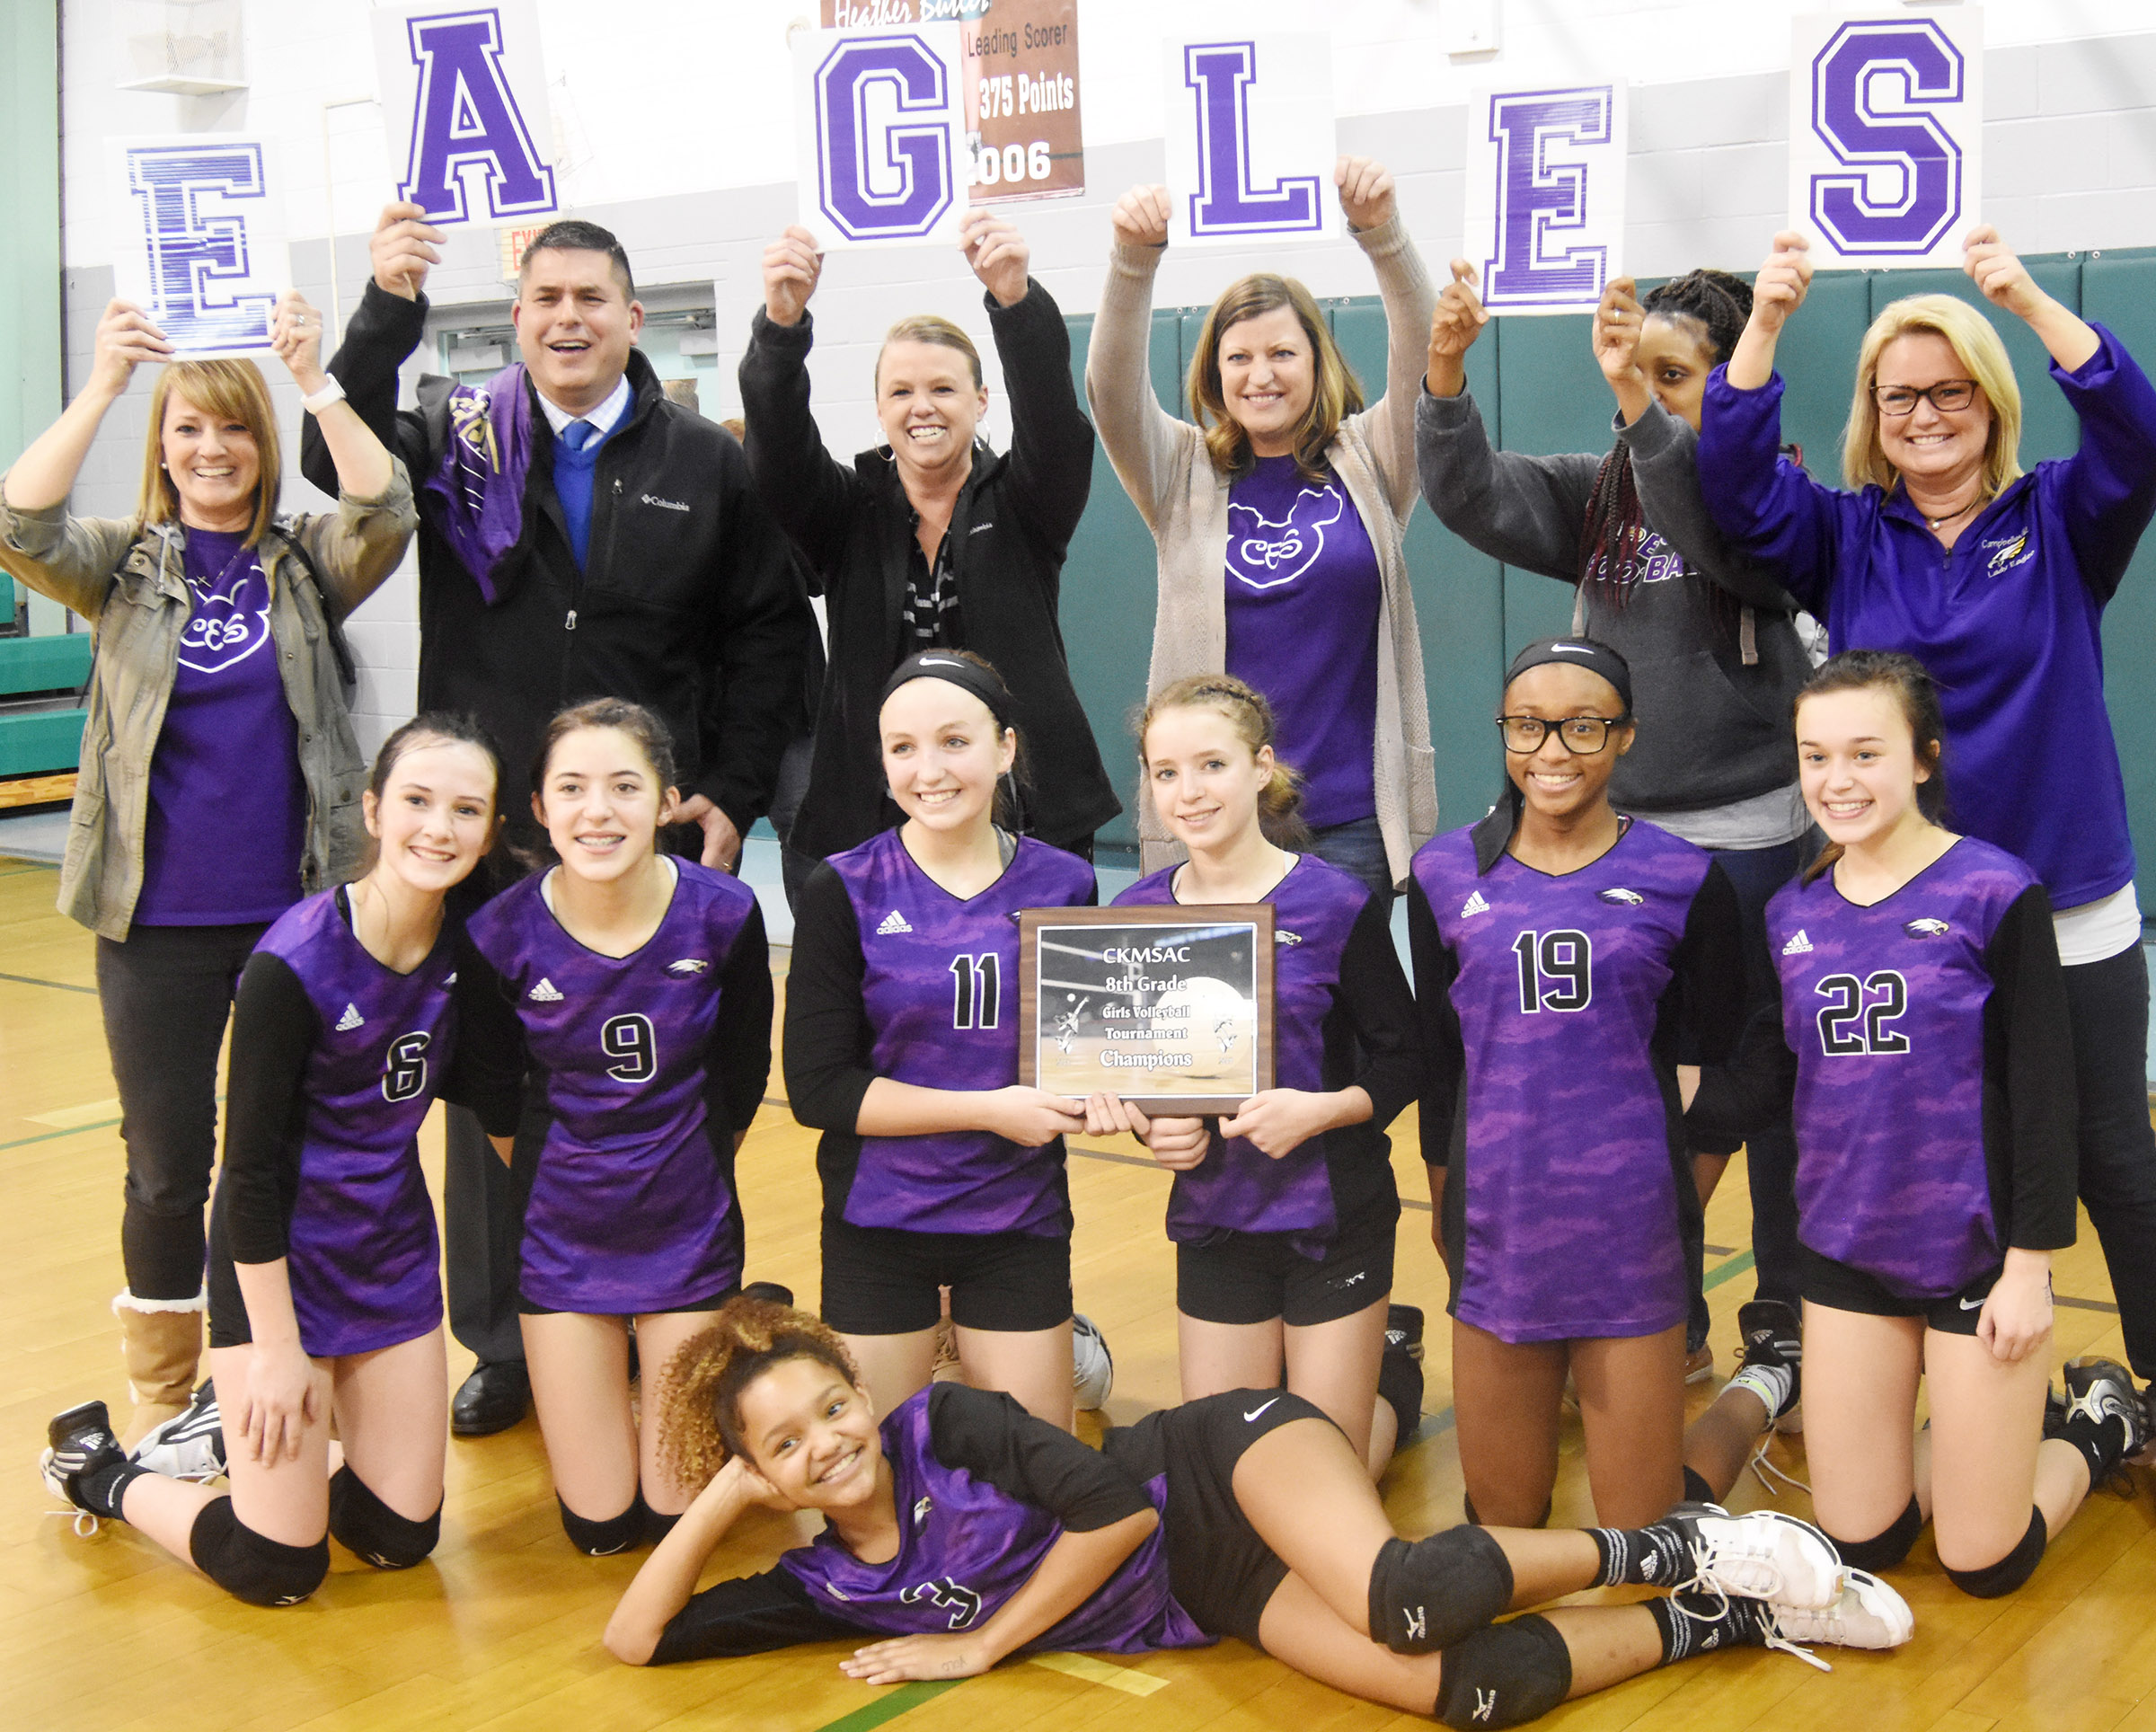 CMS eighth-grade volleyball players pose for a photo with their parents. In front is Alexis Thomas. Second row, from left, Sarah Adkins, Kaylyn Smith, Lainey Watson, Rylee Petett, Bri Gowdy and Tayler Thompson. Back, Vanessa Adkins, Kirby Smith, Jessica Watson, Ashlee Petett, Tonya Gowdy and Kim Thompson.